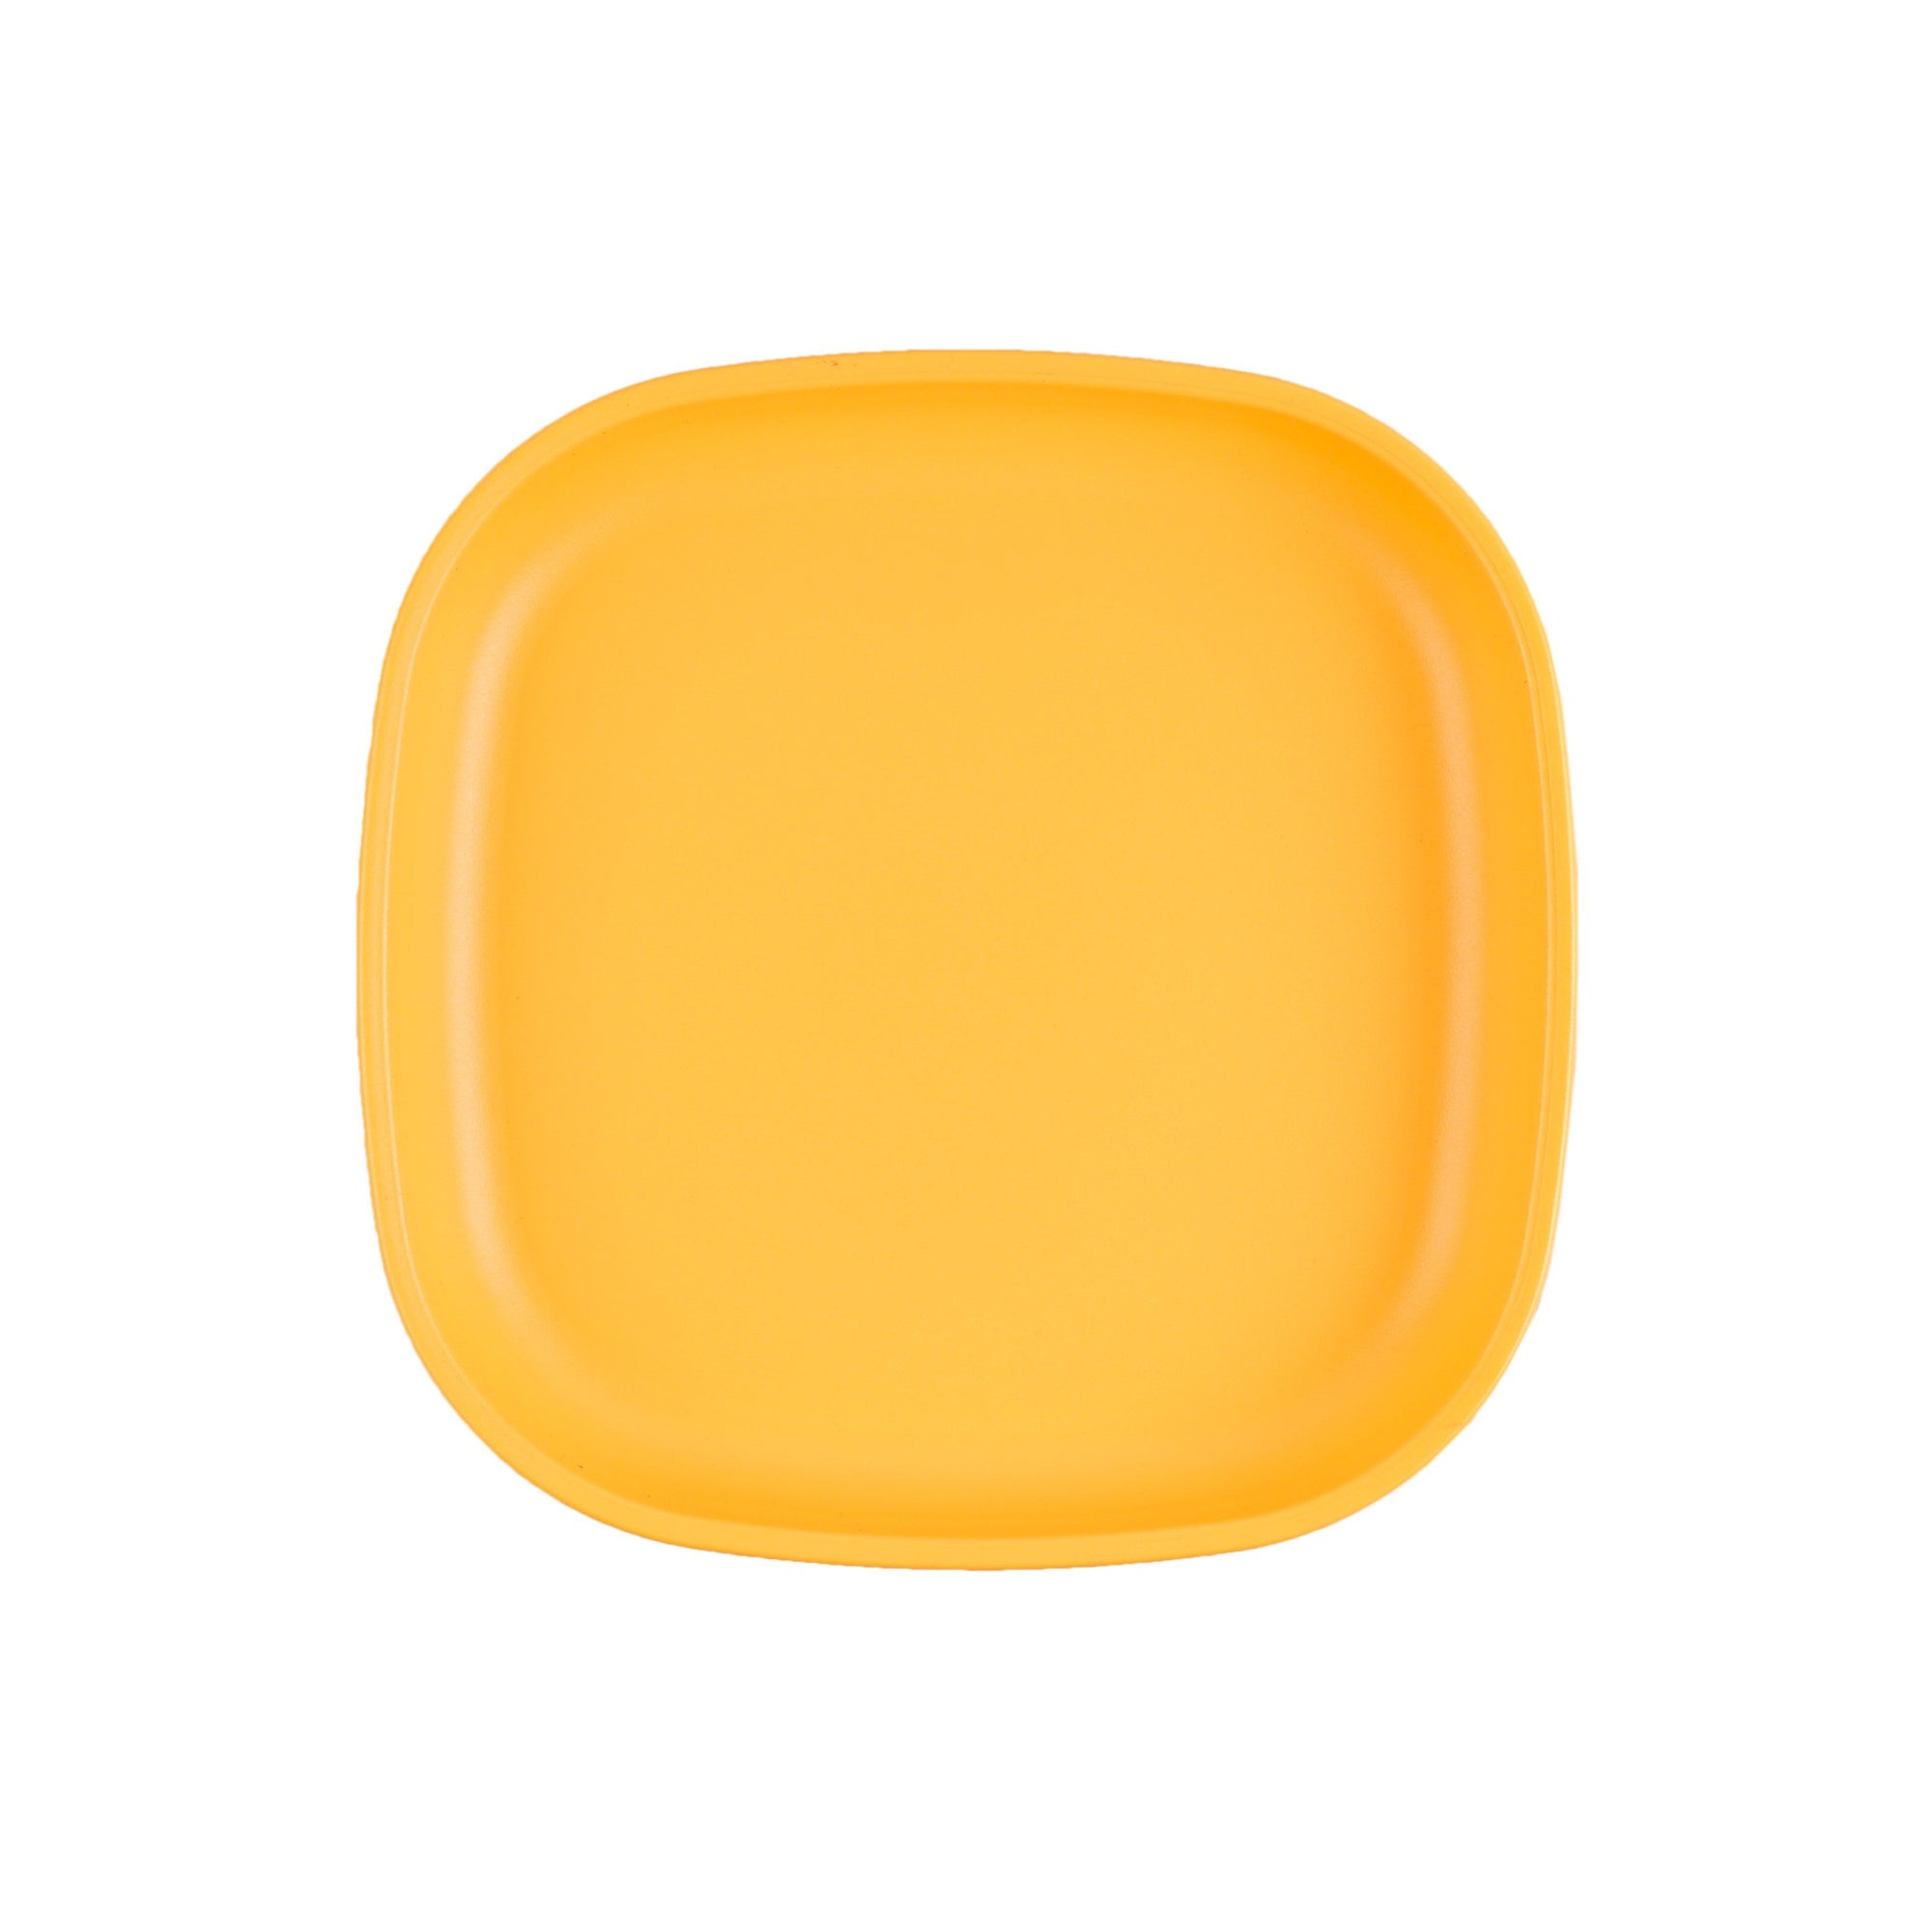 Large Flat Plate (Sunny Yellow)